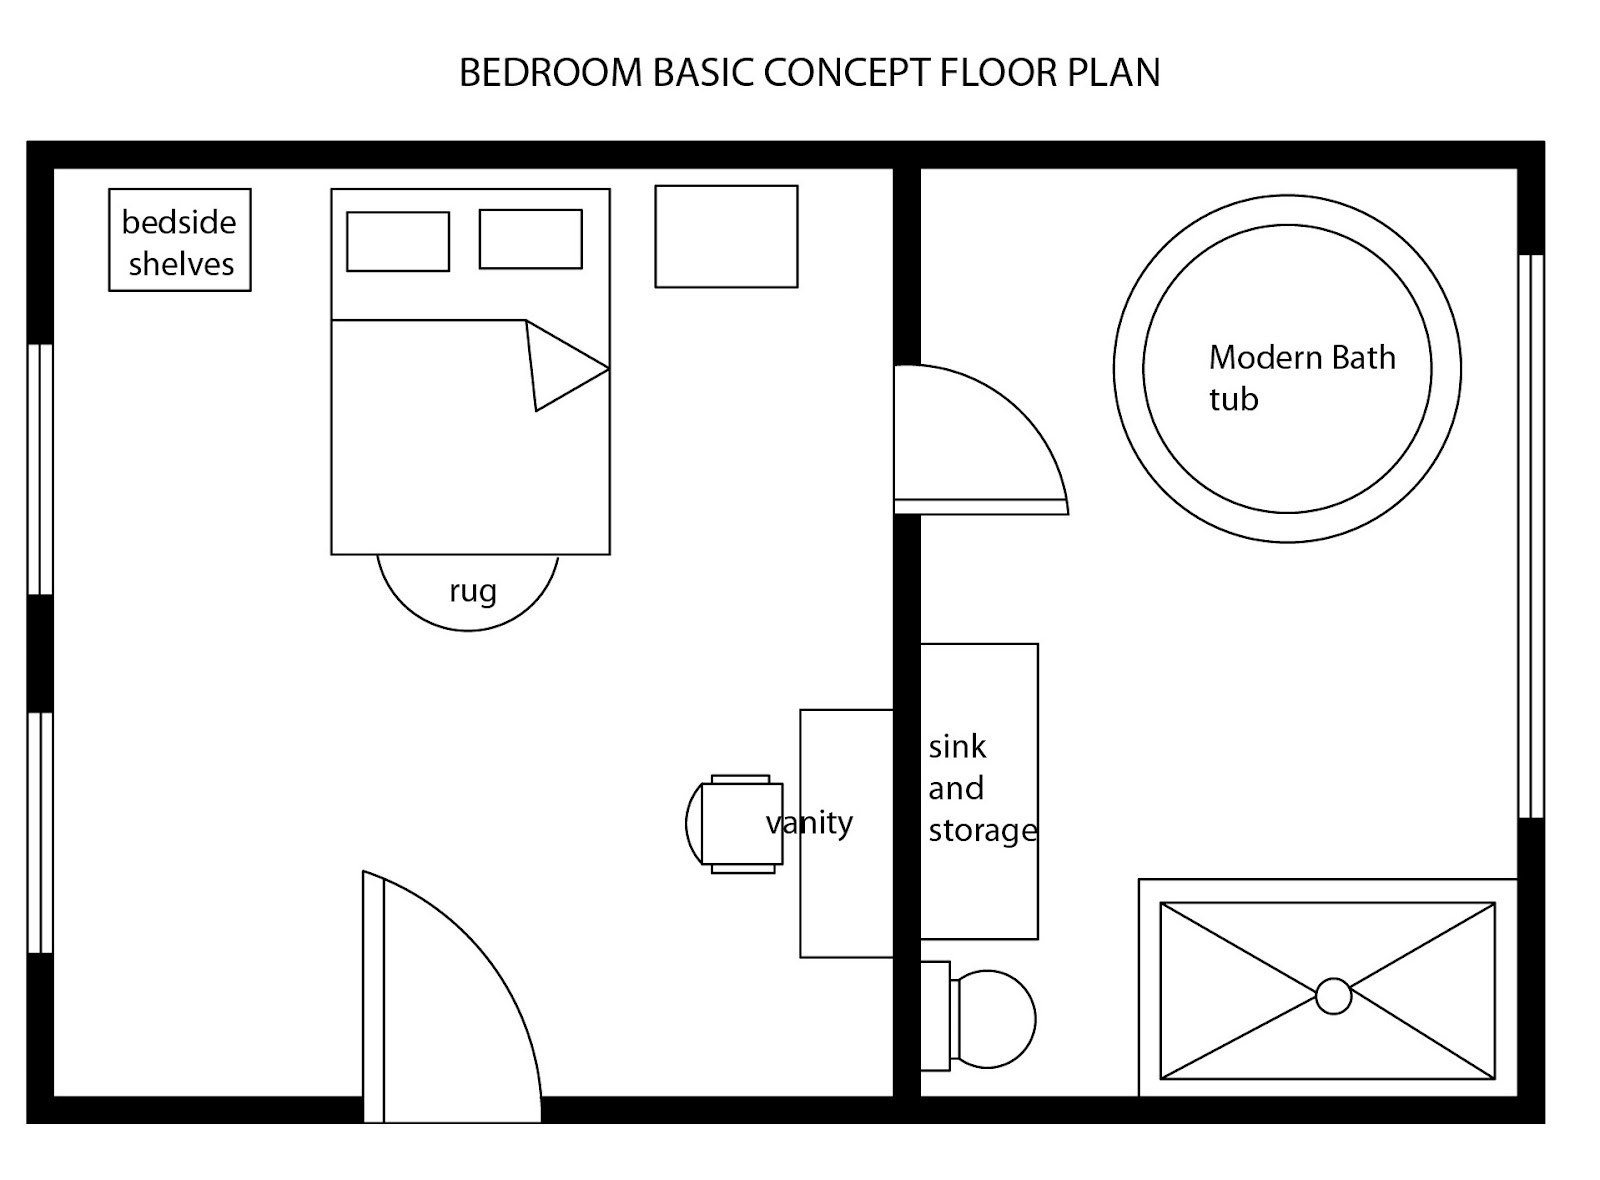 interior design decor modern bedroom basic floor plan